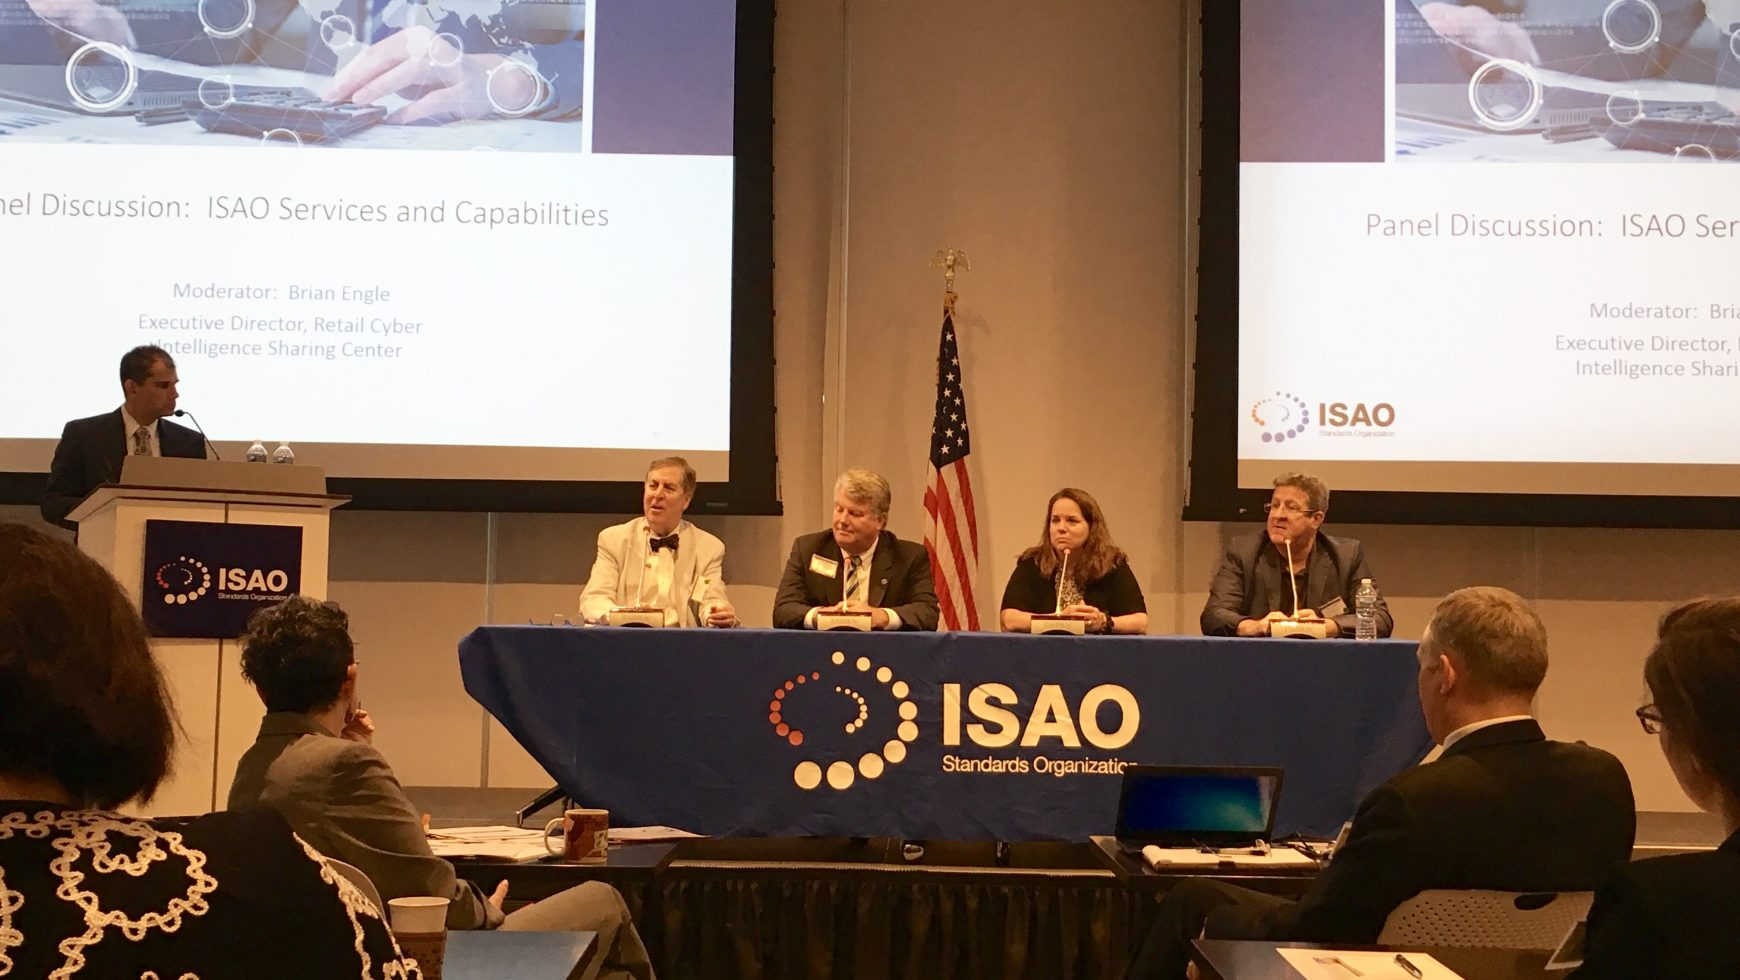 ISAO Standards Organization Hosts Over 100 Attendees at Fourth Public Forum